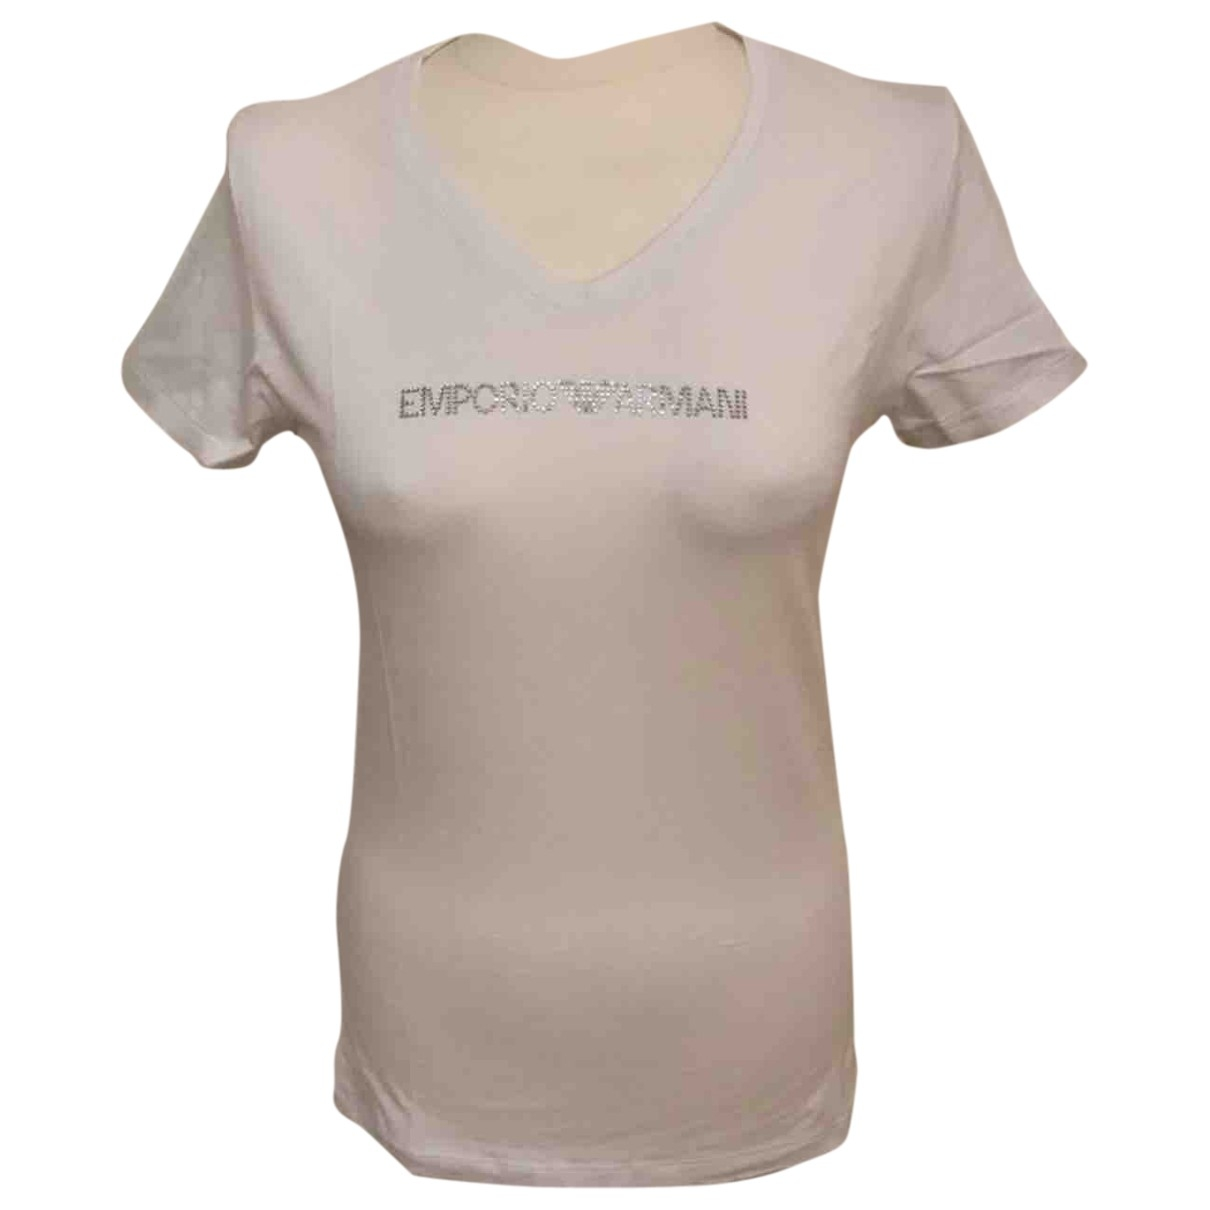 Emporio Armani \N White  top for Women S International